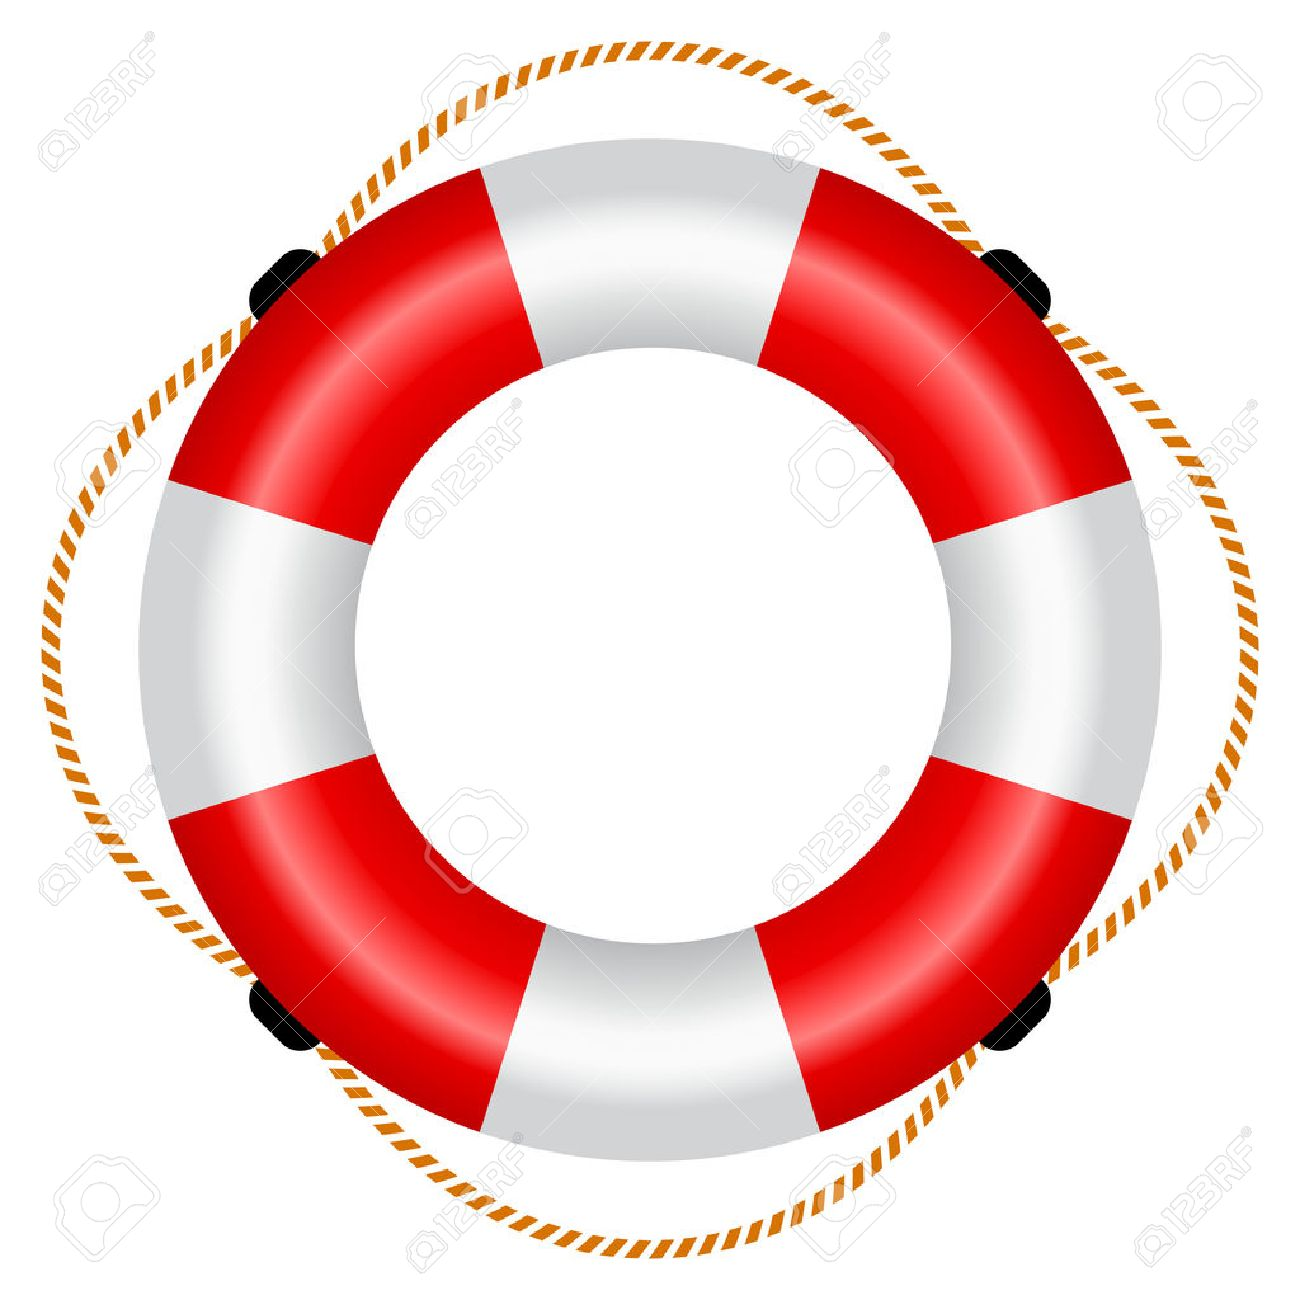 life raft icon royalty free cliparts vectors and stock rh 123rf com life preserver ring clipart